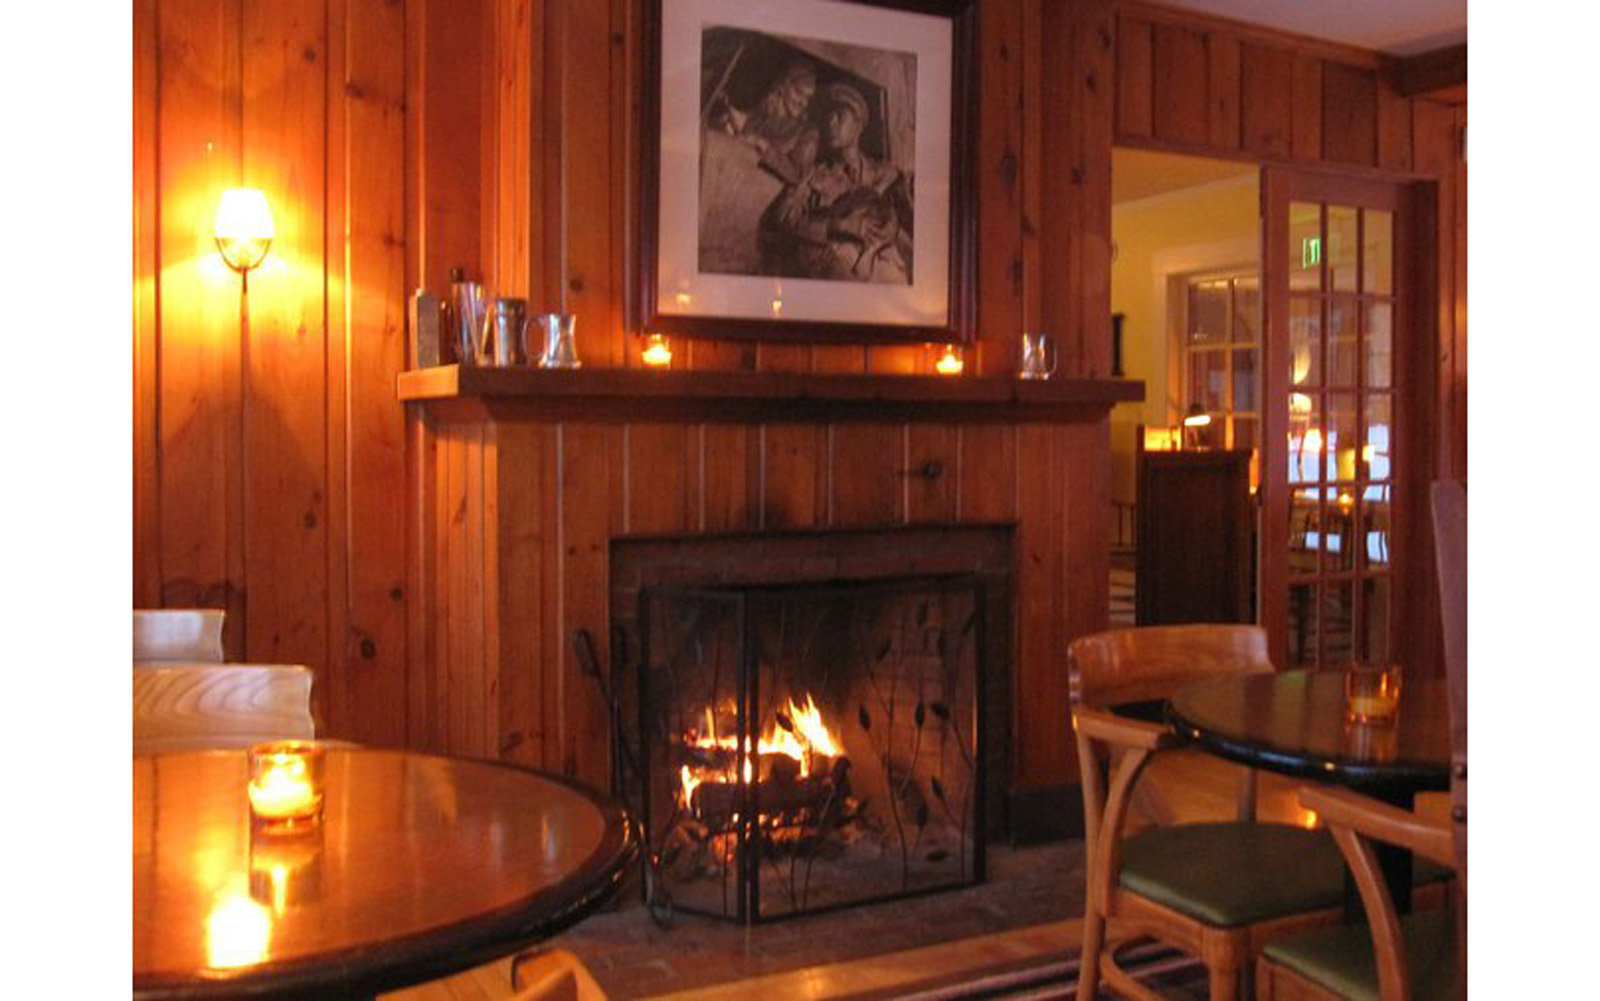 New Hampshire – Tavern at The Horse and Hound Inn